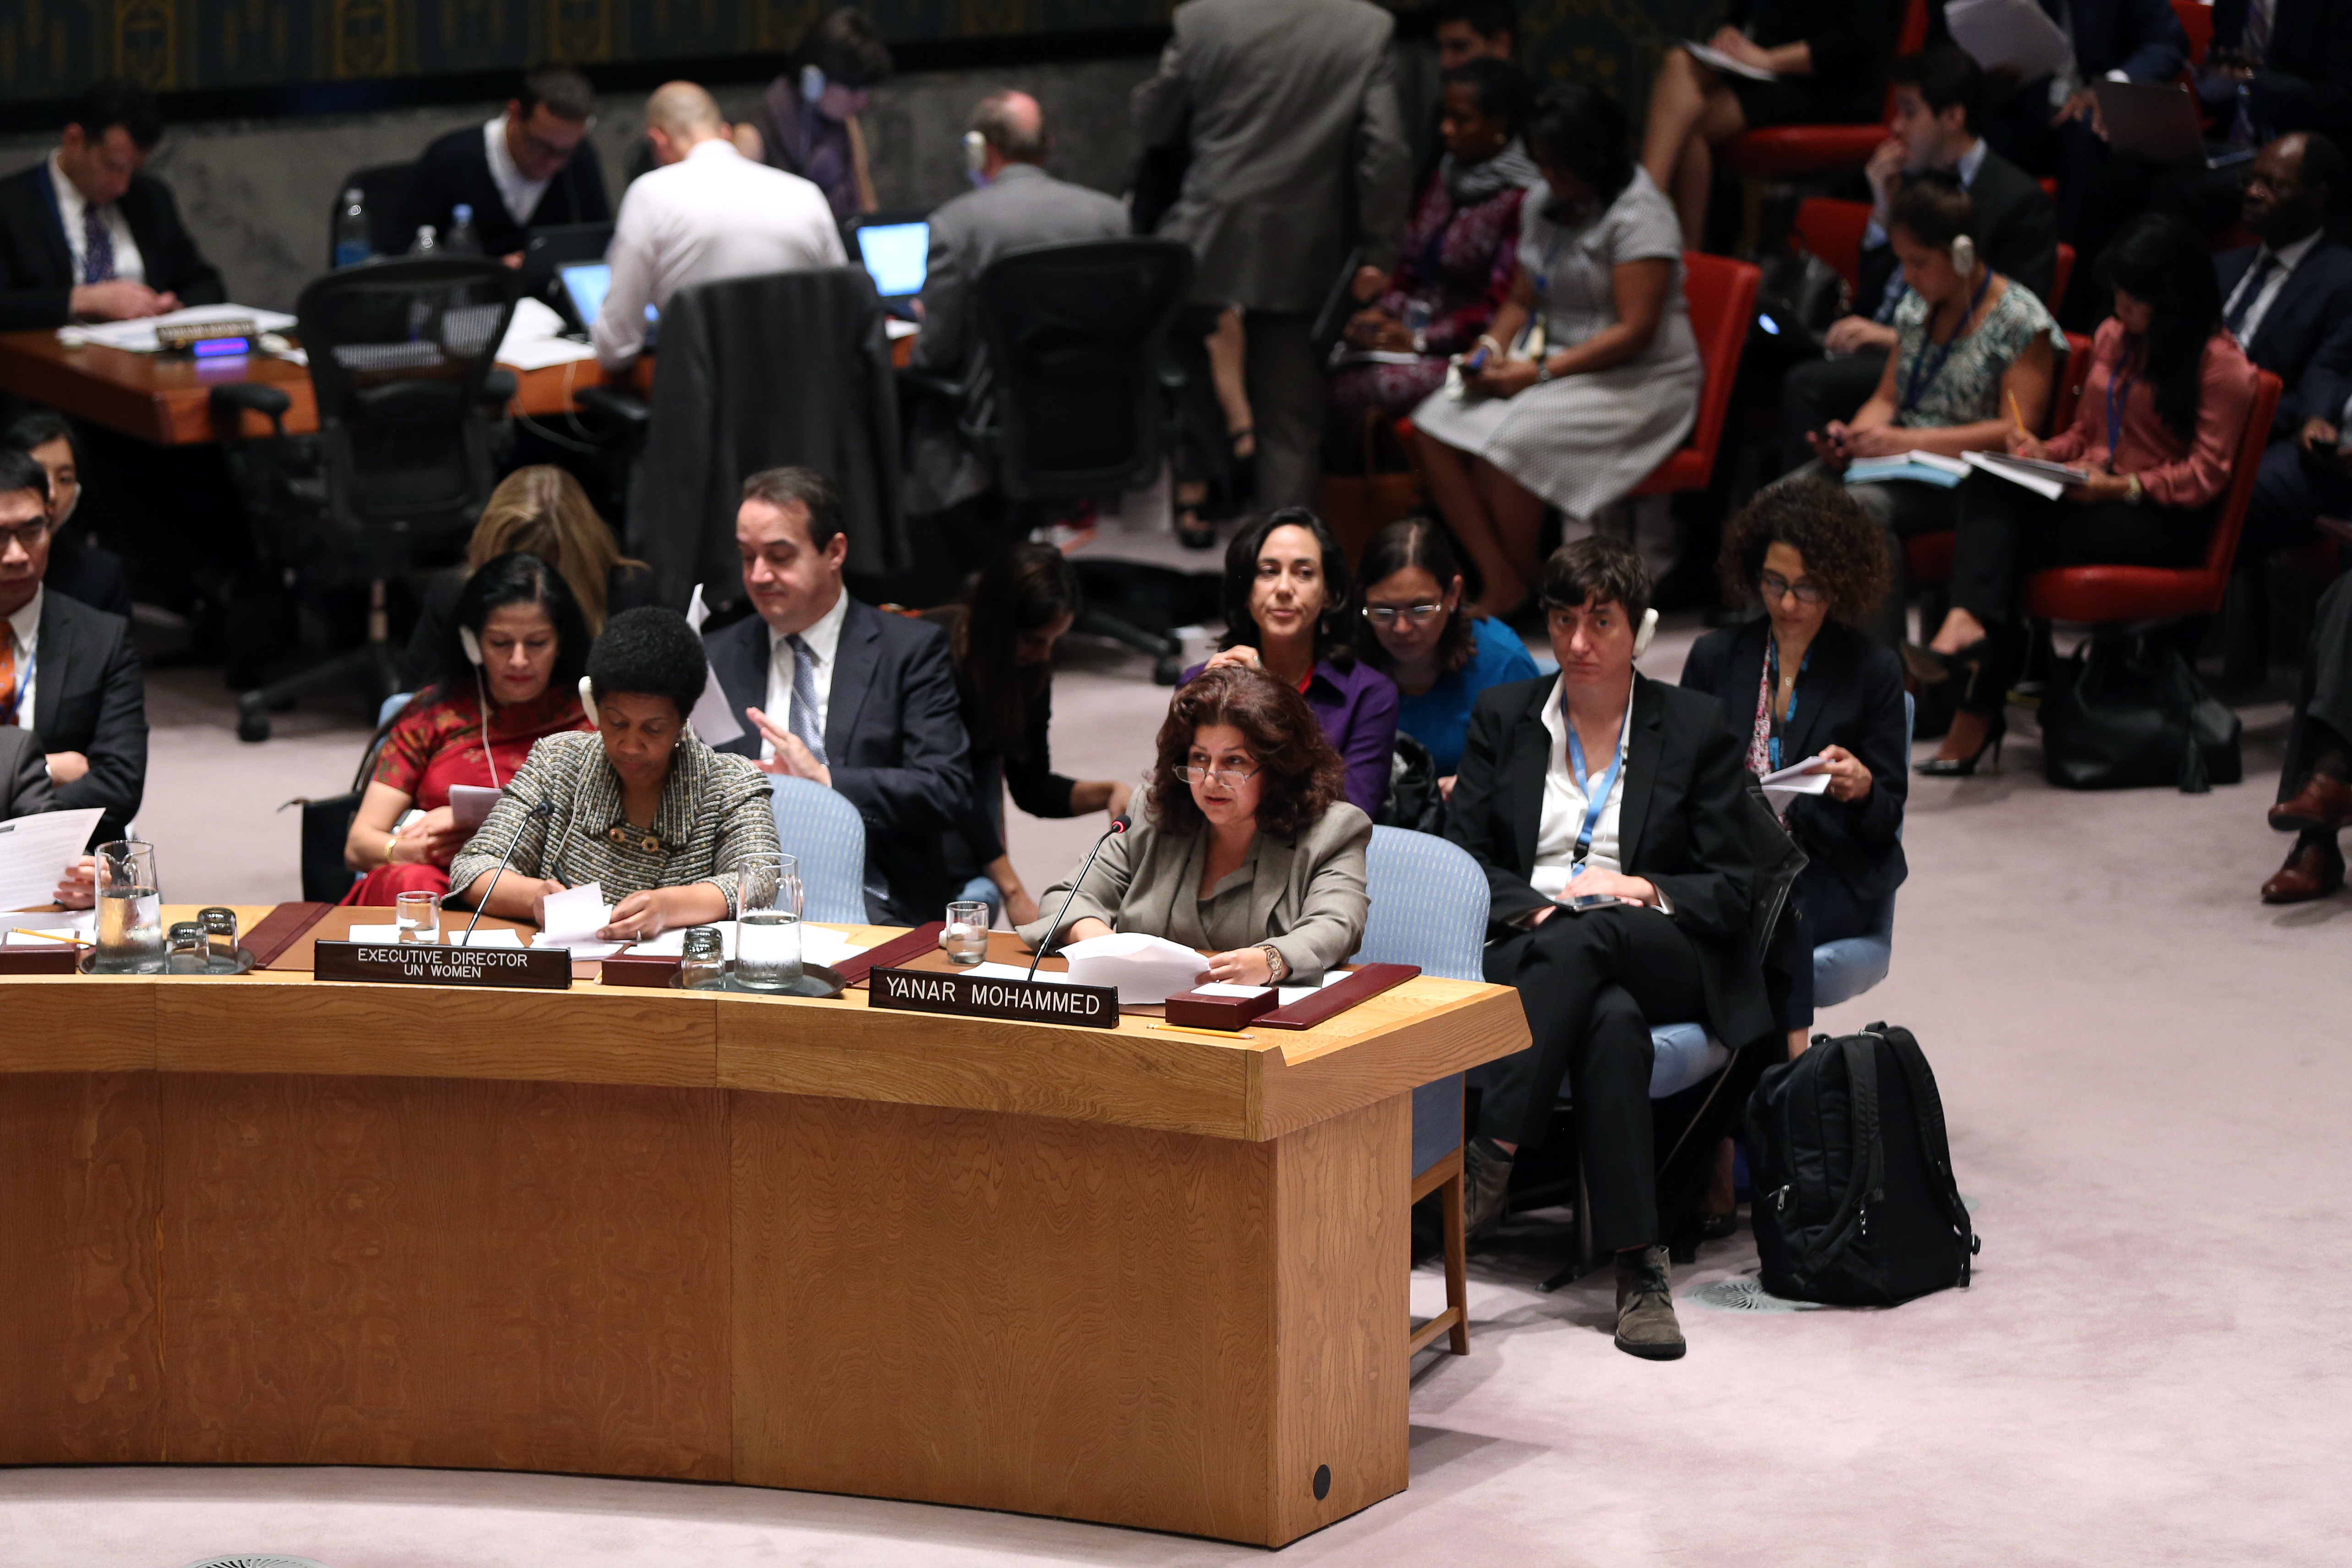 Statement by Ms. Yanar Mohammad at the UN Security Council Open Debate on Women, Peace and Security